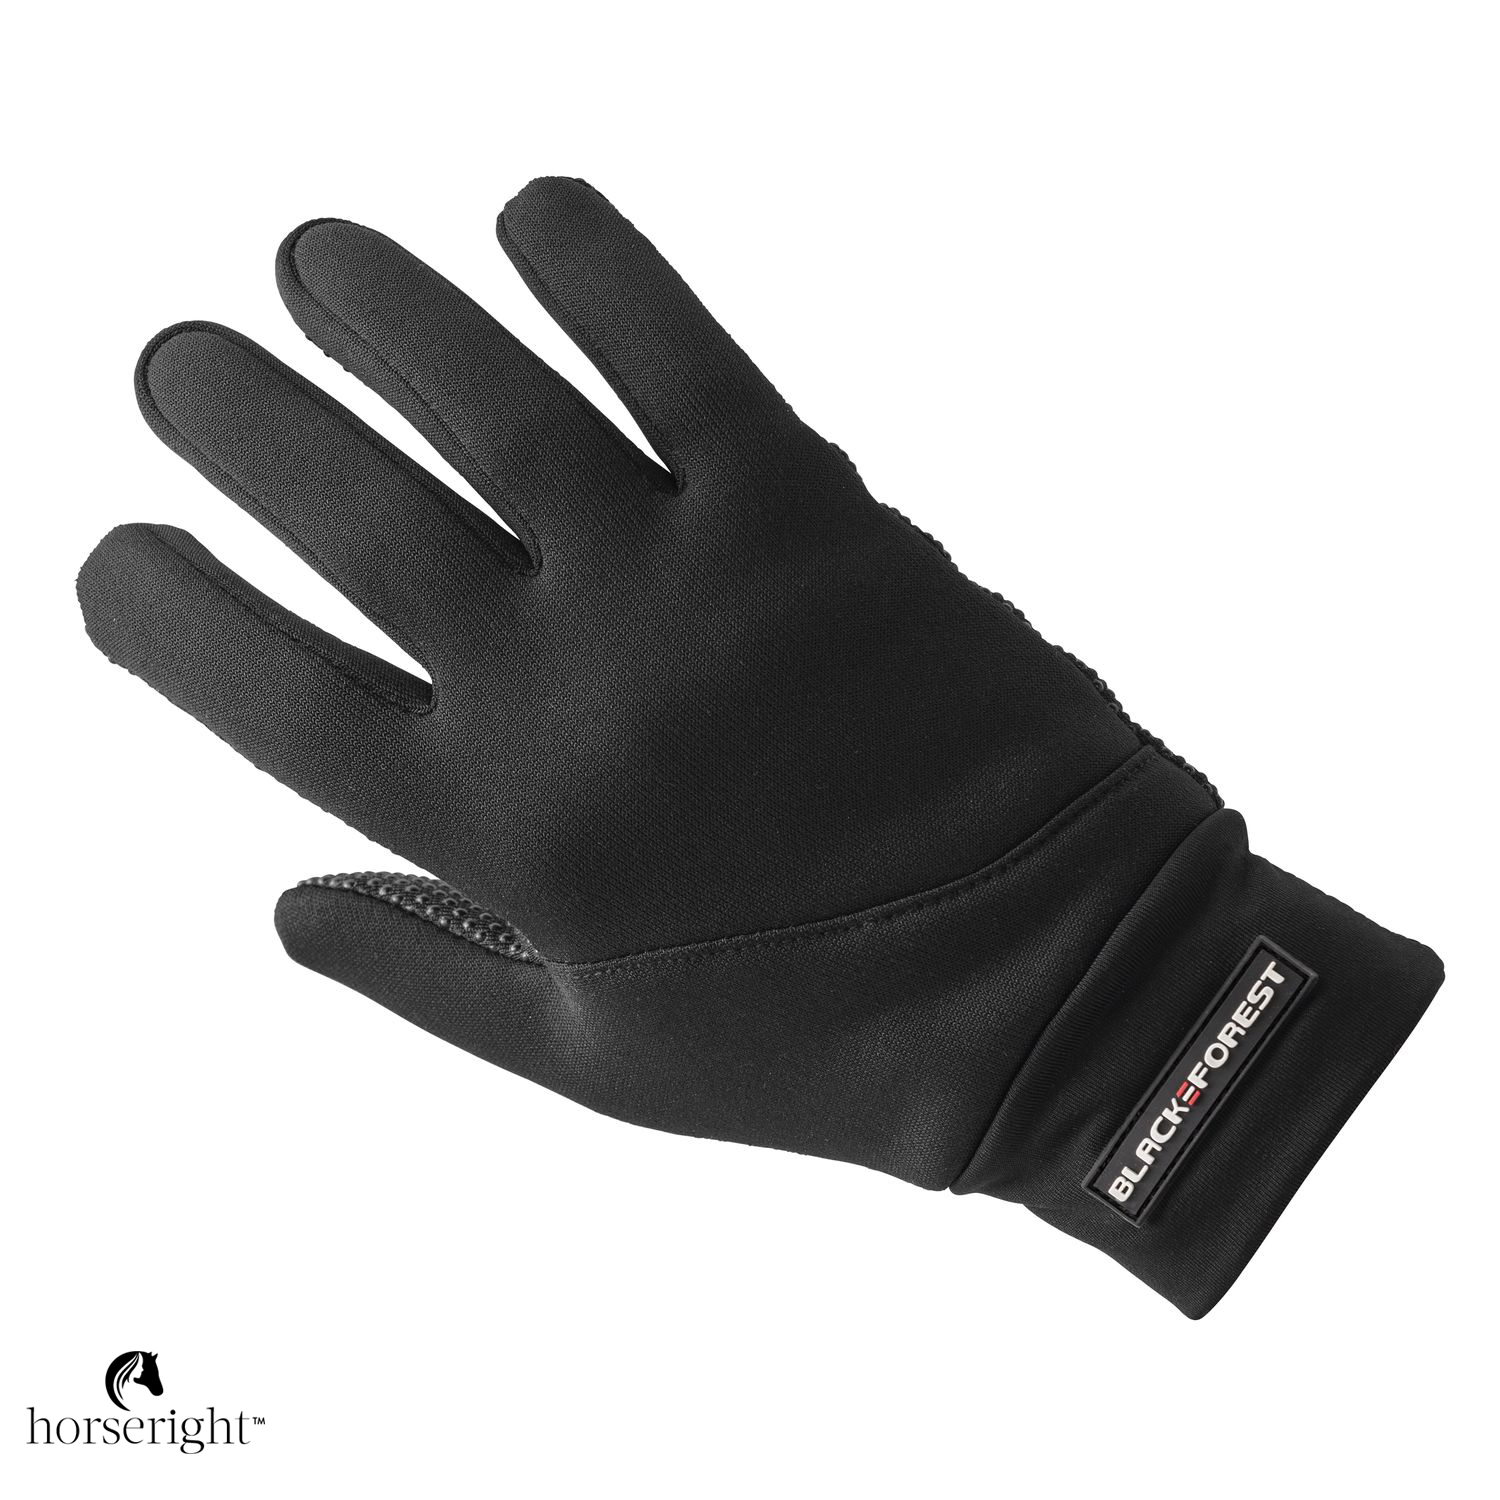 Clearance Black Forest Powergrip Fleece Gloves